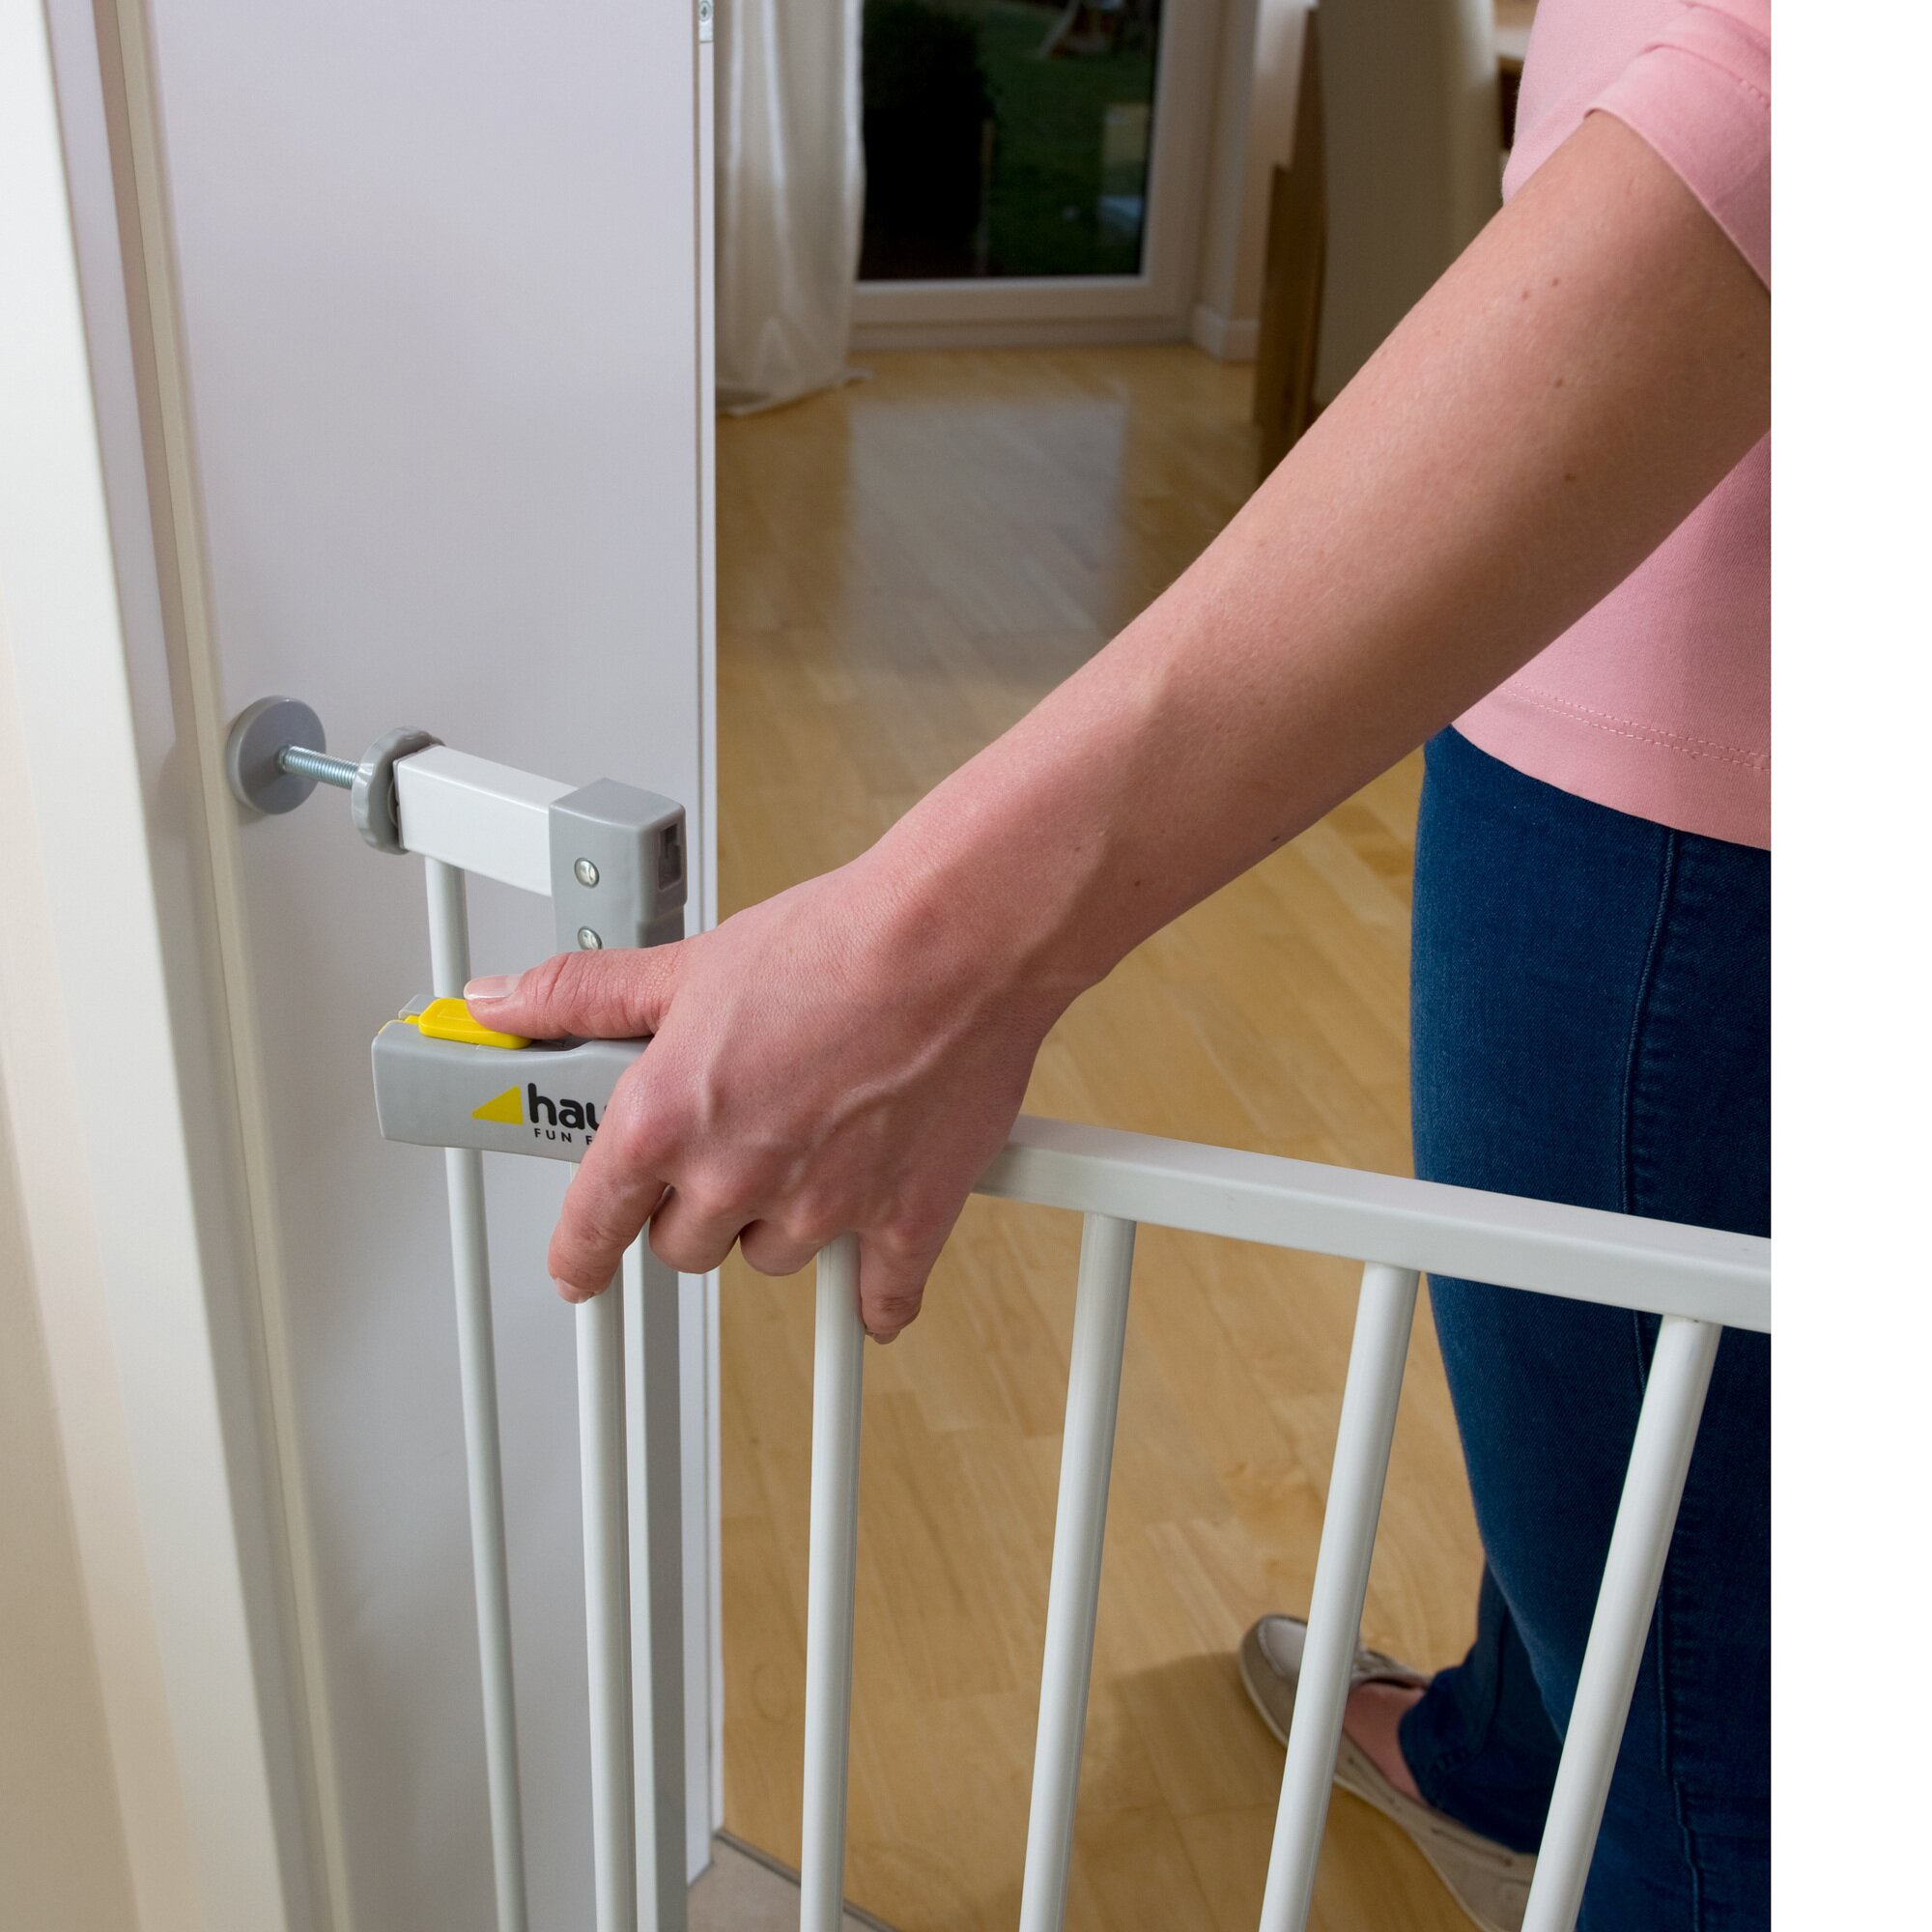 hauck-kinderschutzgitter-squeeze-handle-safety-gate-